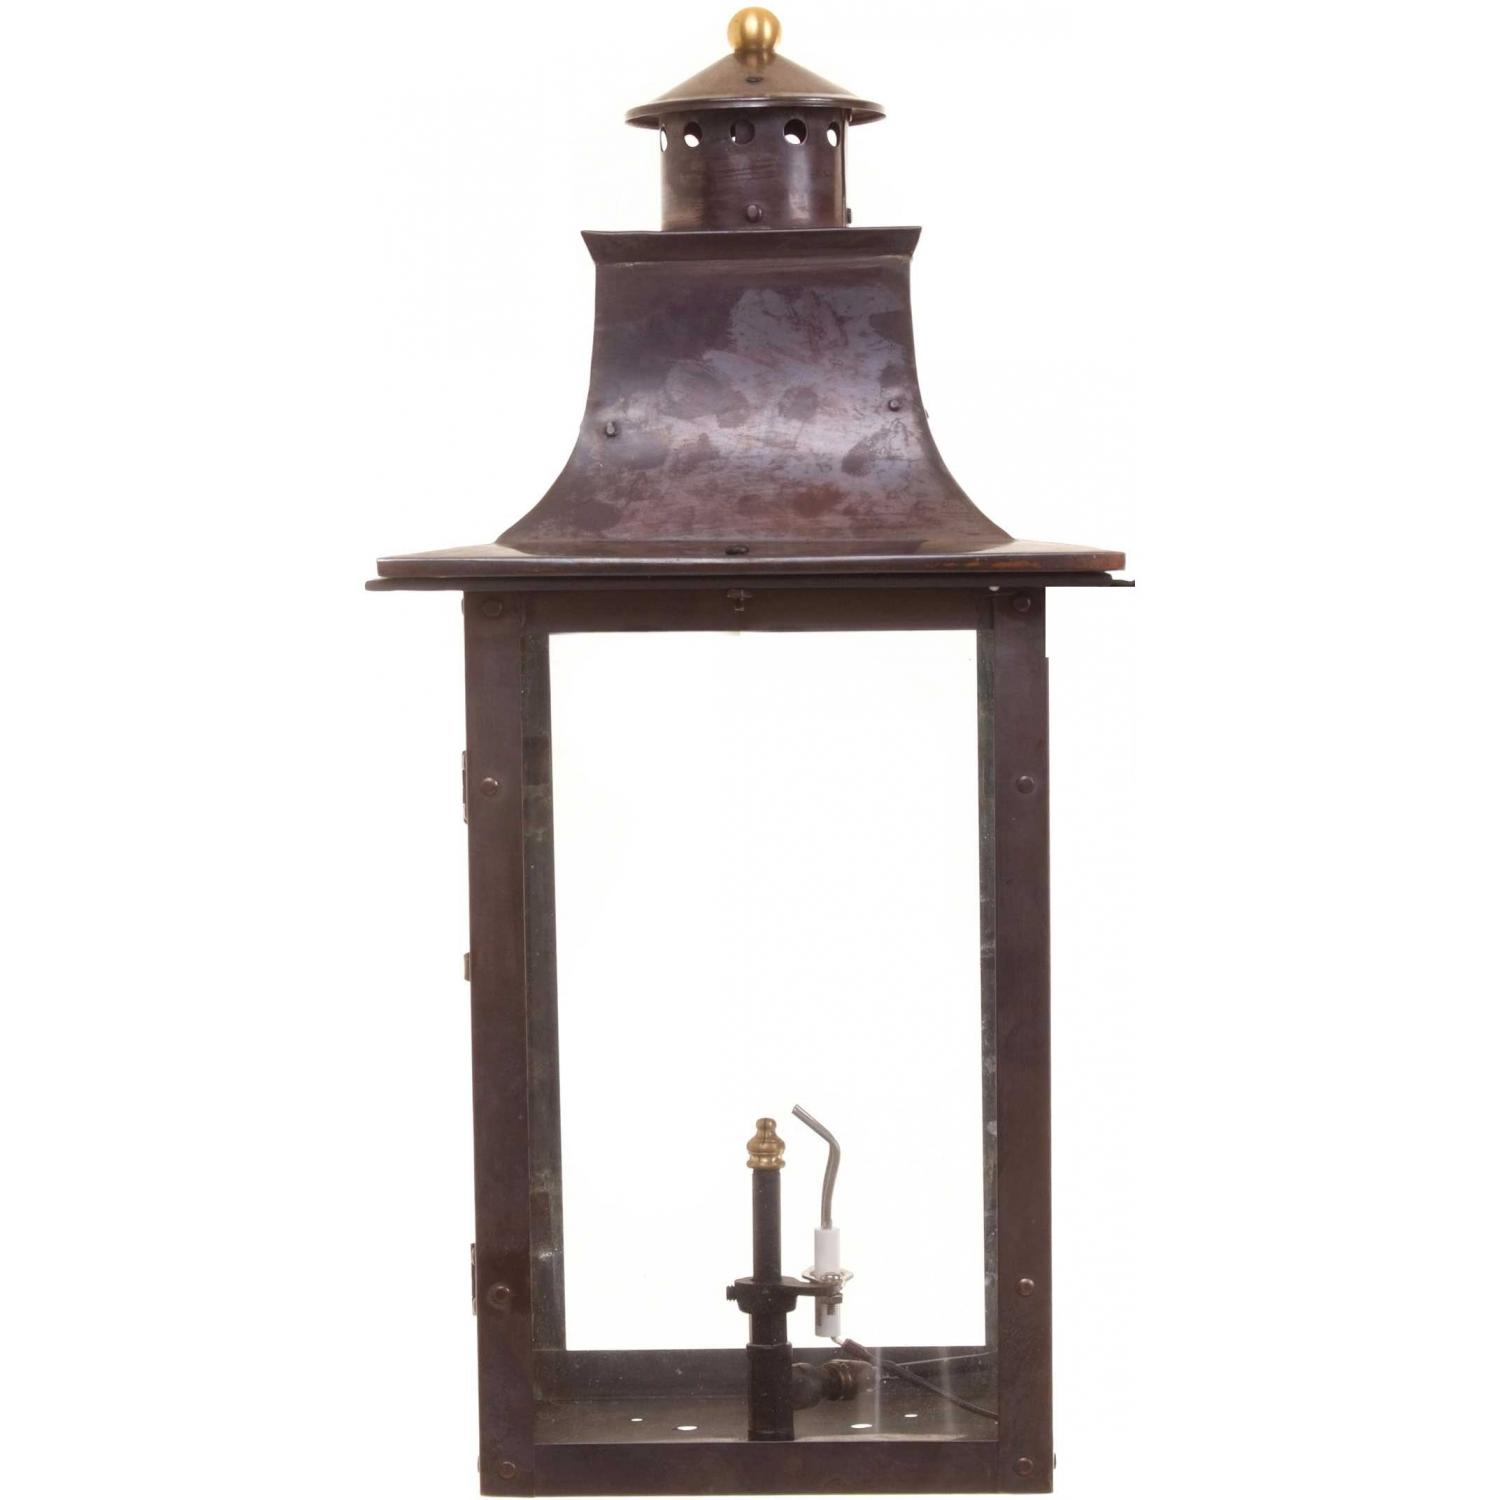 Regency GL21 Faye Rue Small Propane Gas Light With Open Flame Burner And Manual Ignition For Post Mount